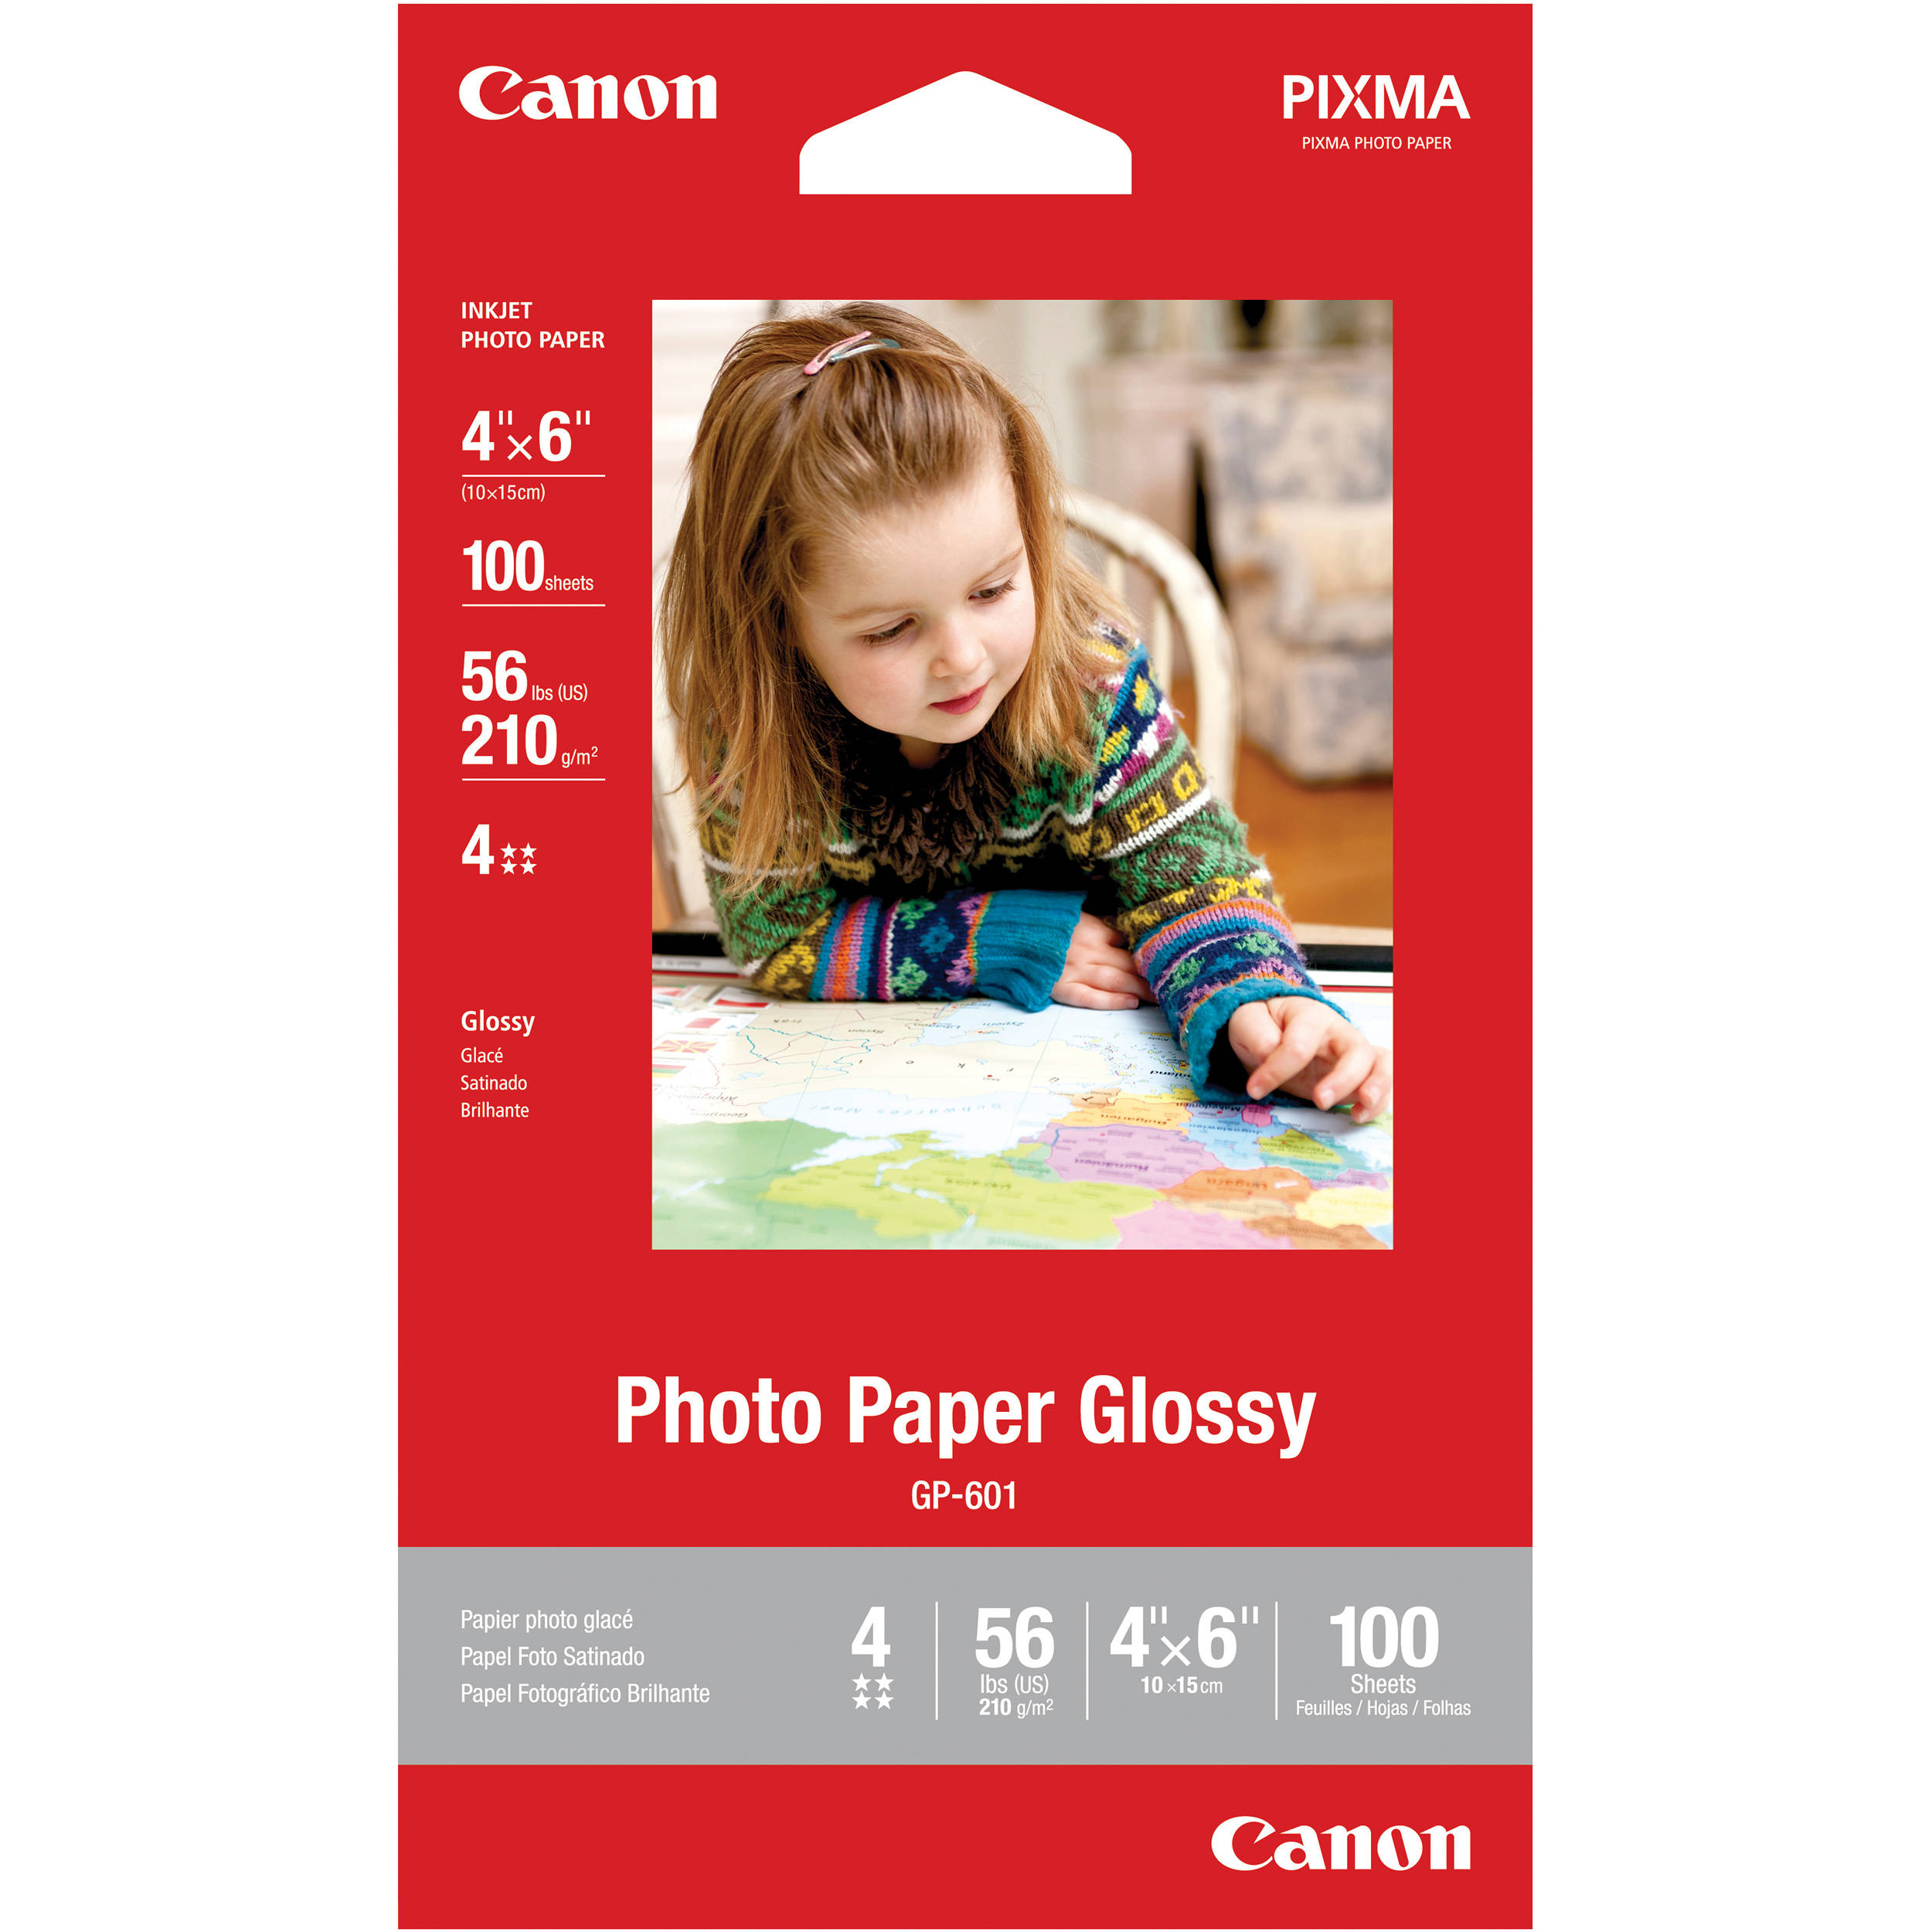 glossy photo paper weight